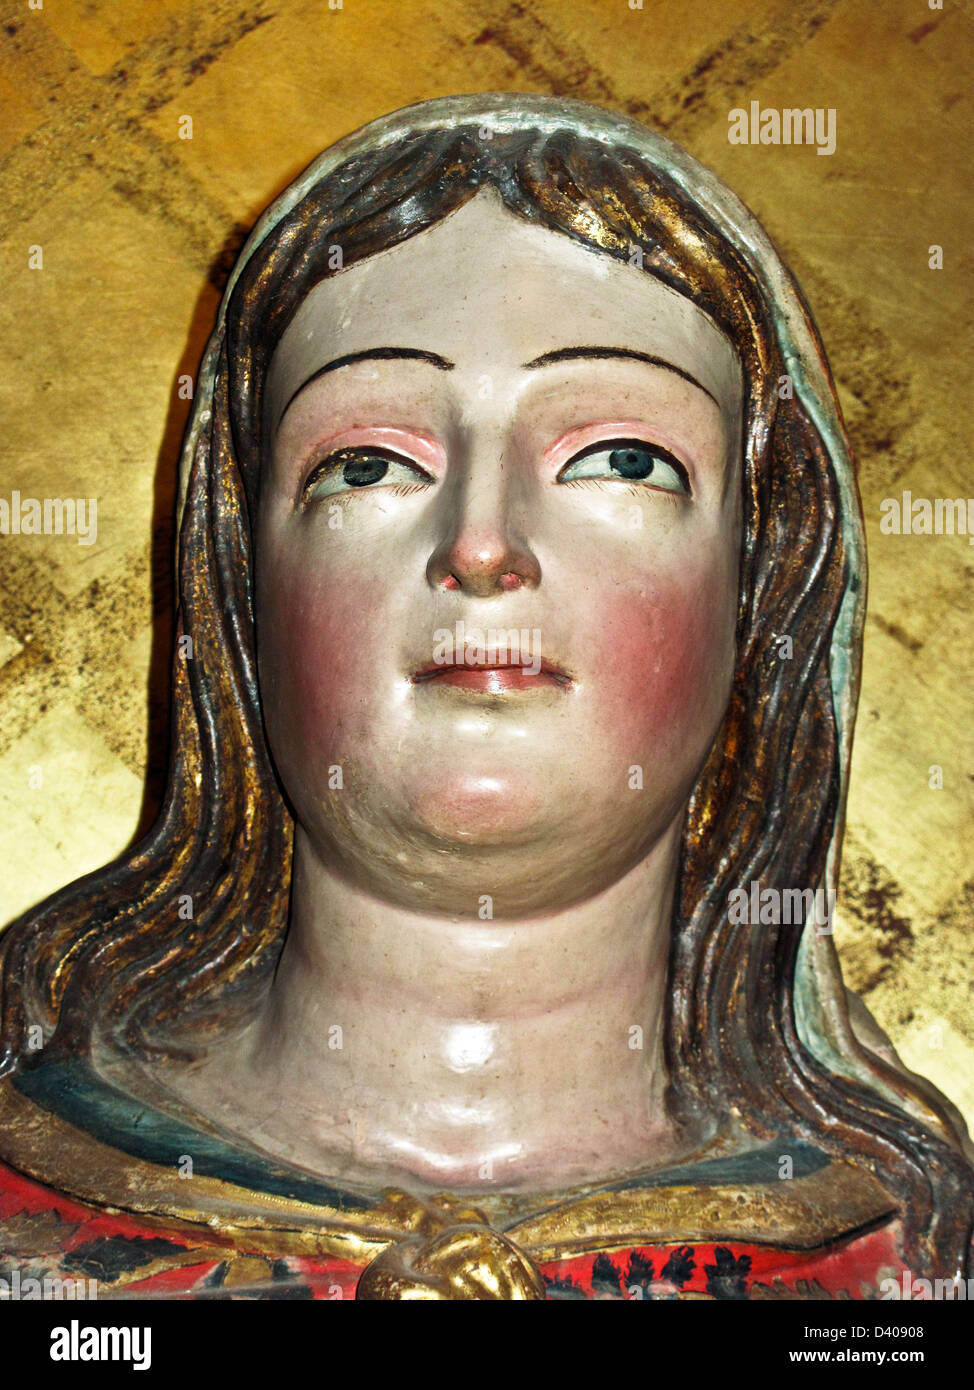 polychrome gilded 17th century plaster figure statue Santa Lucia displayed in Museum of Oaxacan Cultures Oaxaca - Stock Image